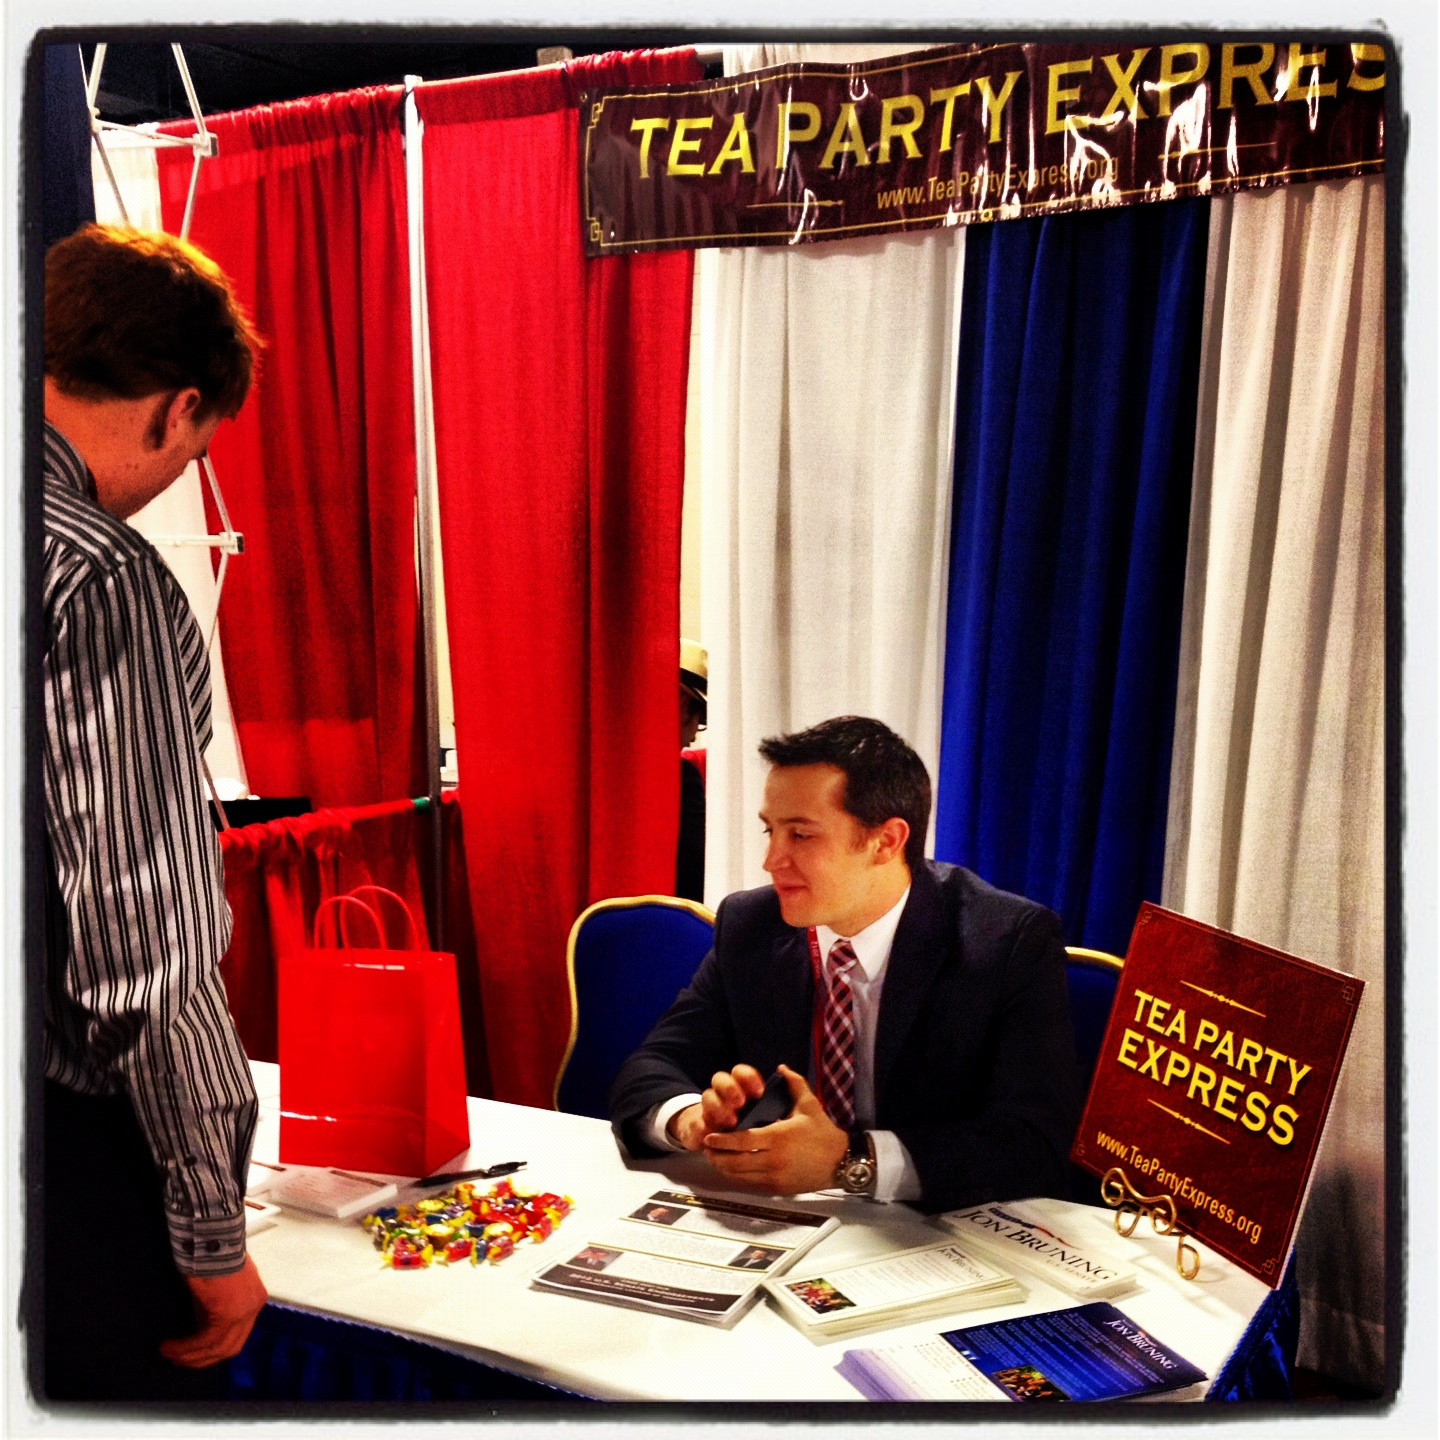 Tea Party Express at CPAC